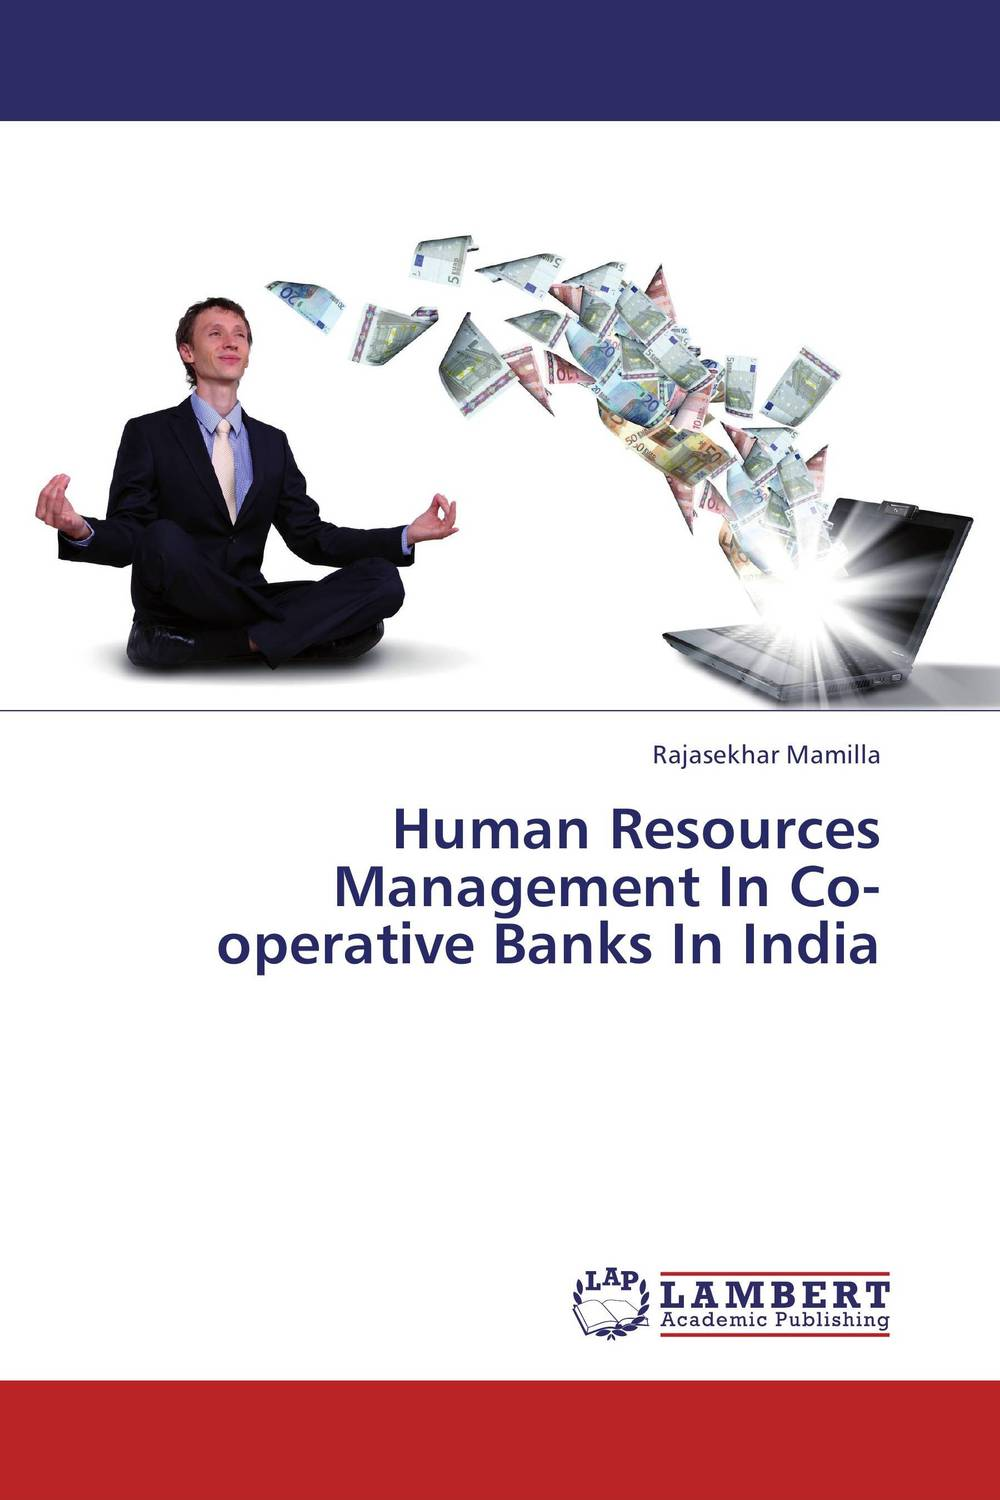 Human Resources Management In Co-operative Banks In India valentina munteanu human resources management in the commercial field of companies